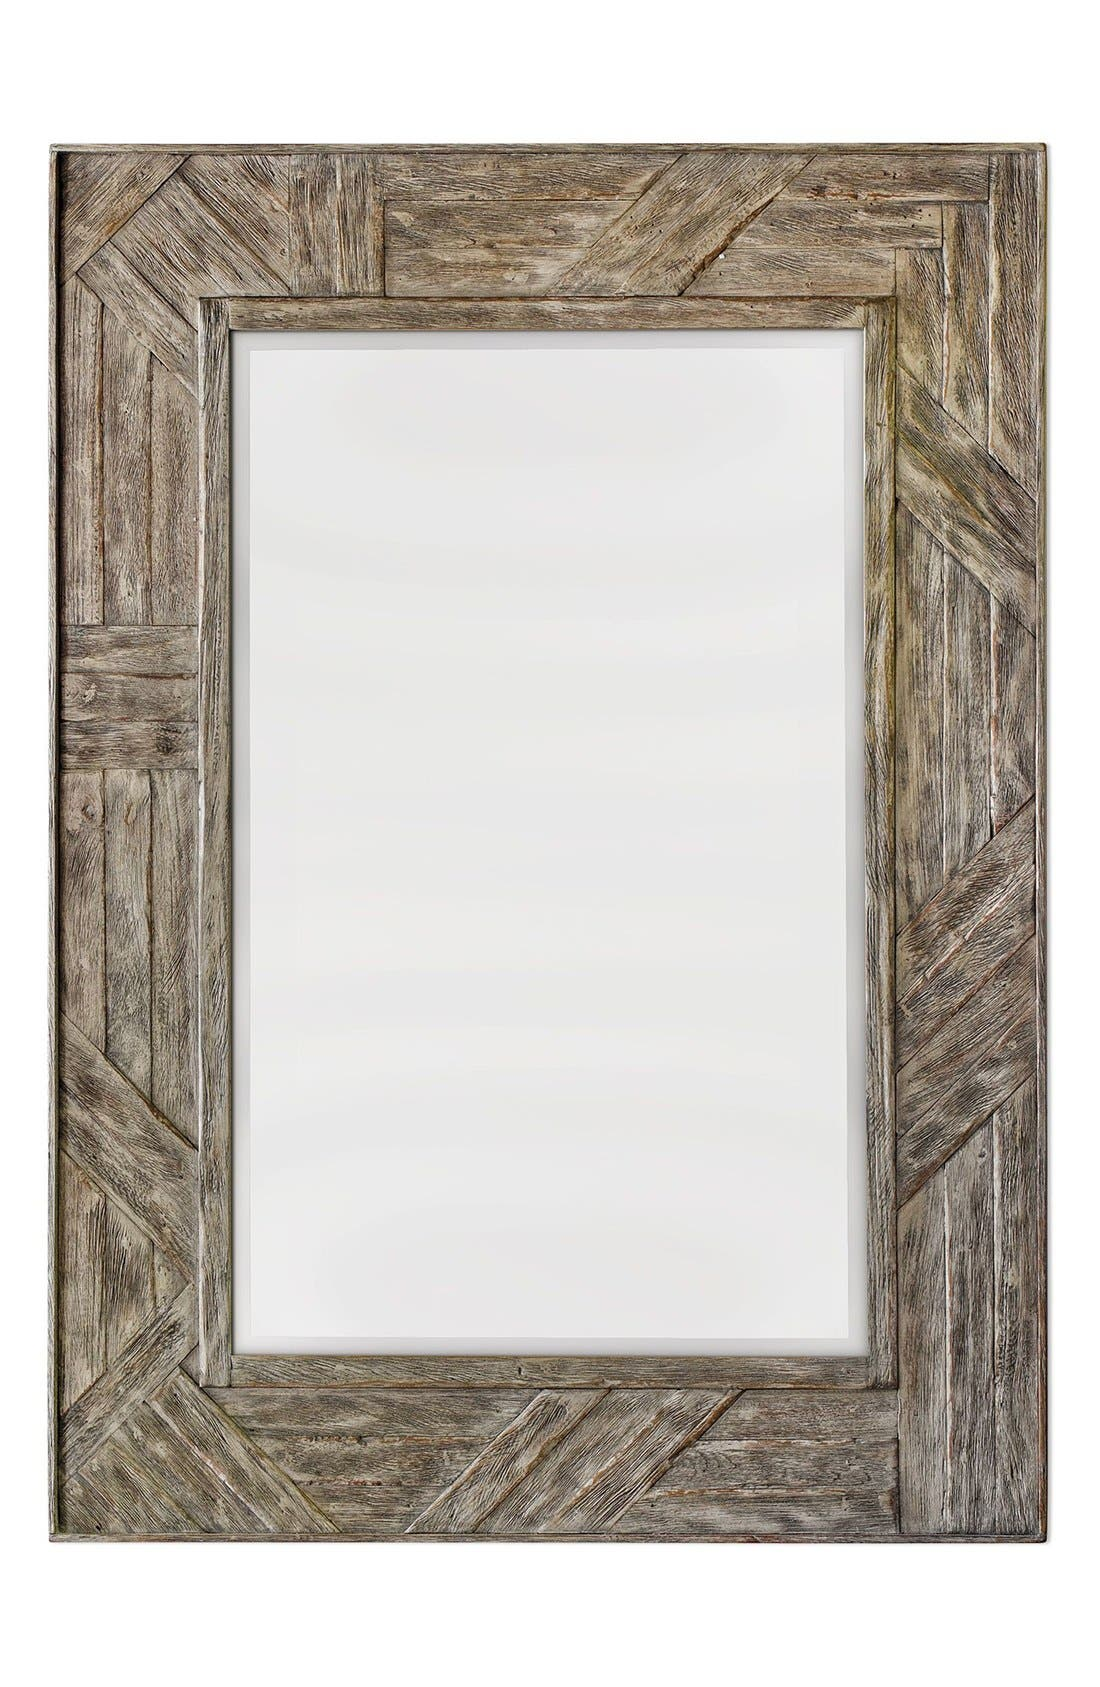 'Fortuo' Mahogany Wood Mirror,                             Main thumbnail 1, color,                             Brown